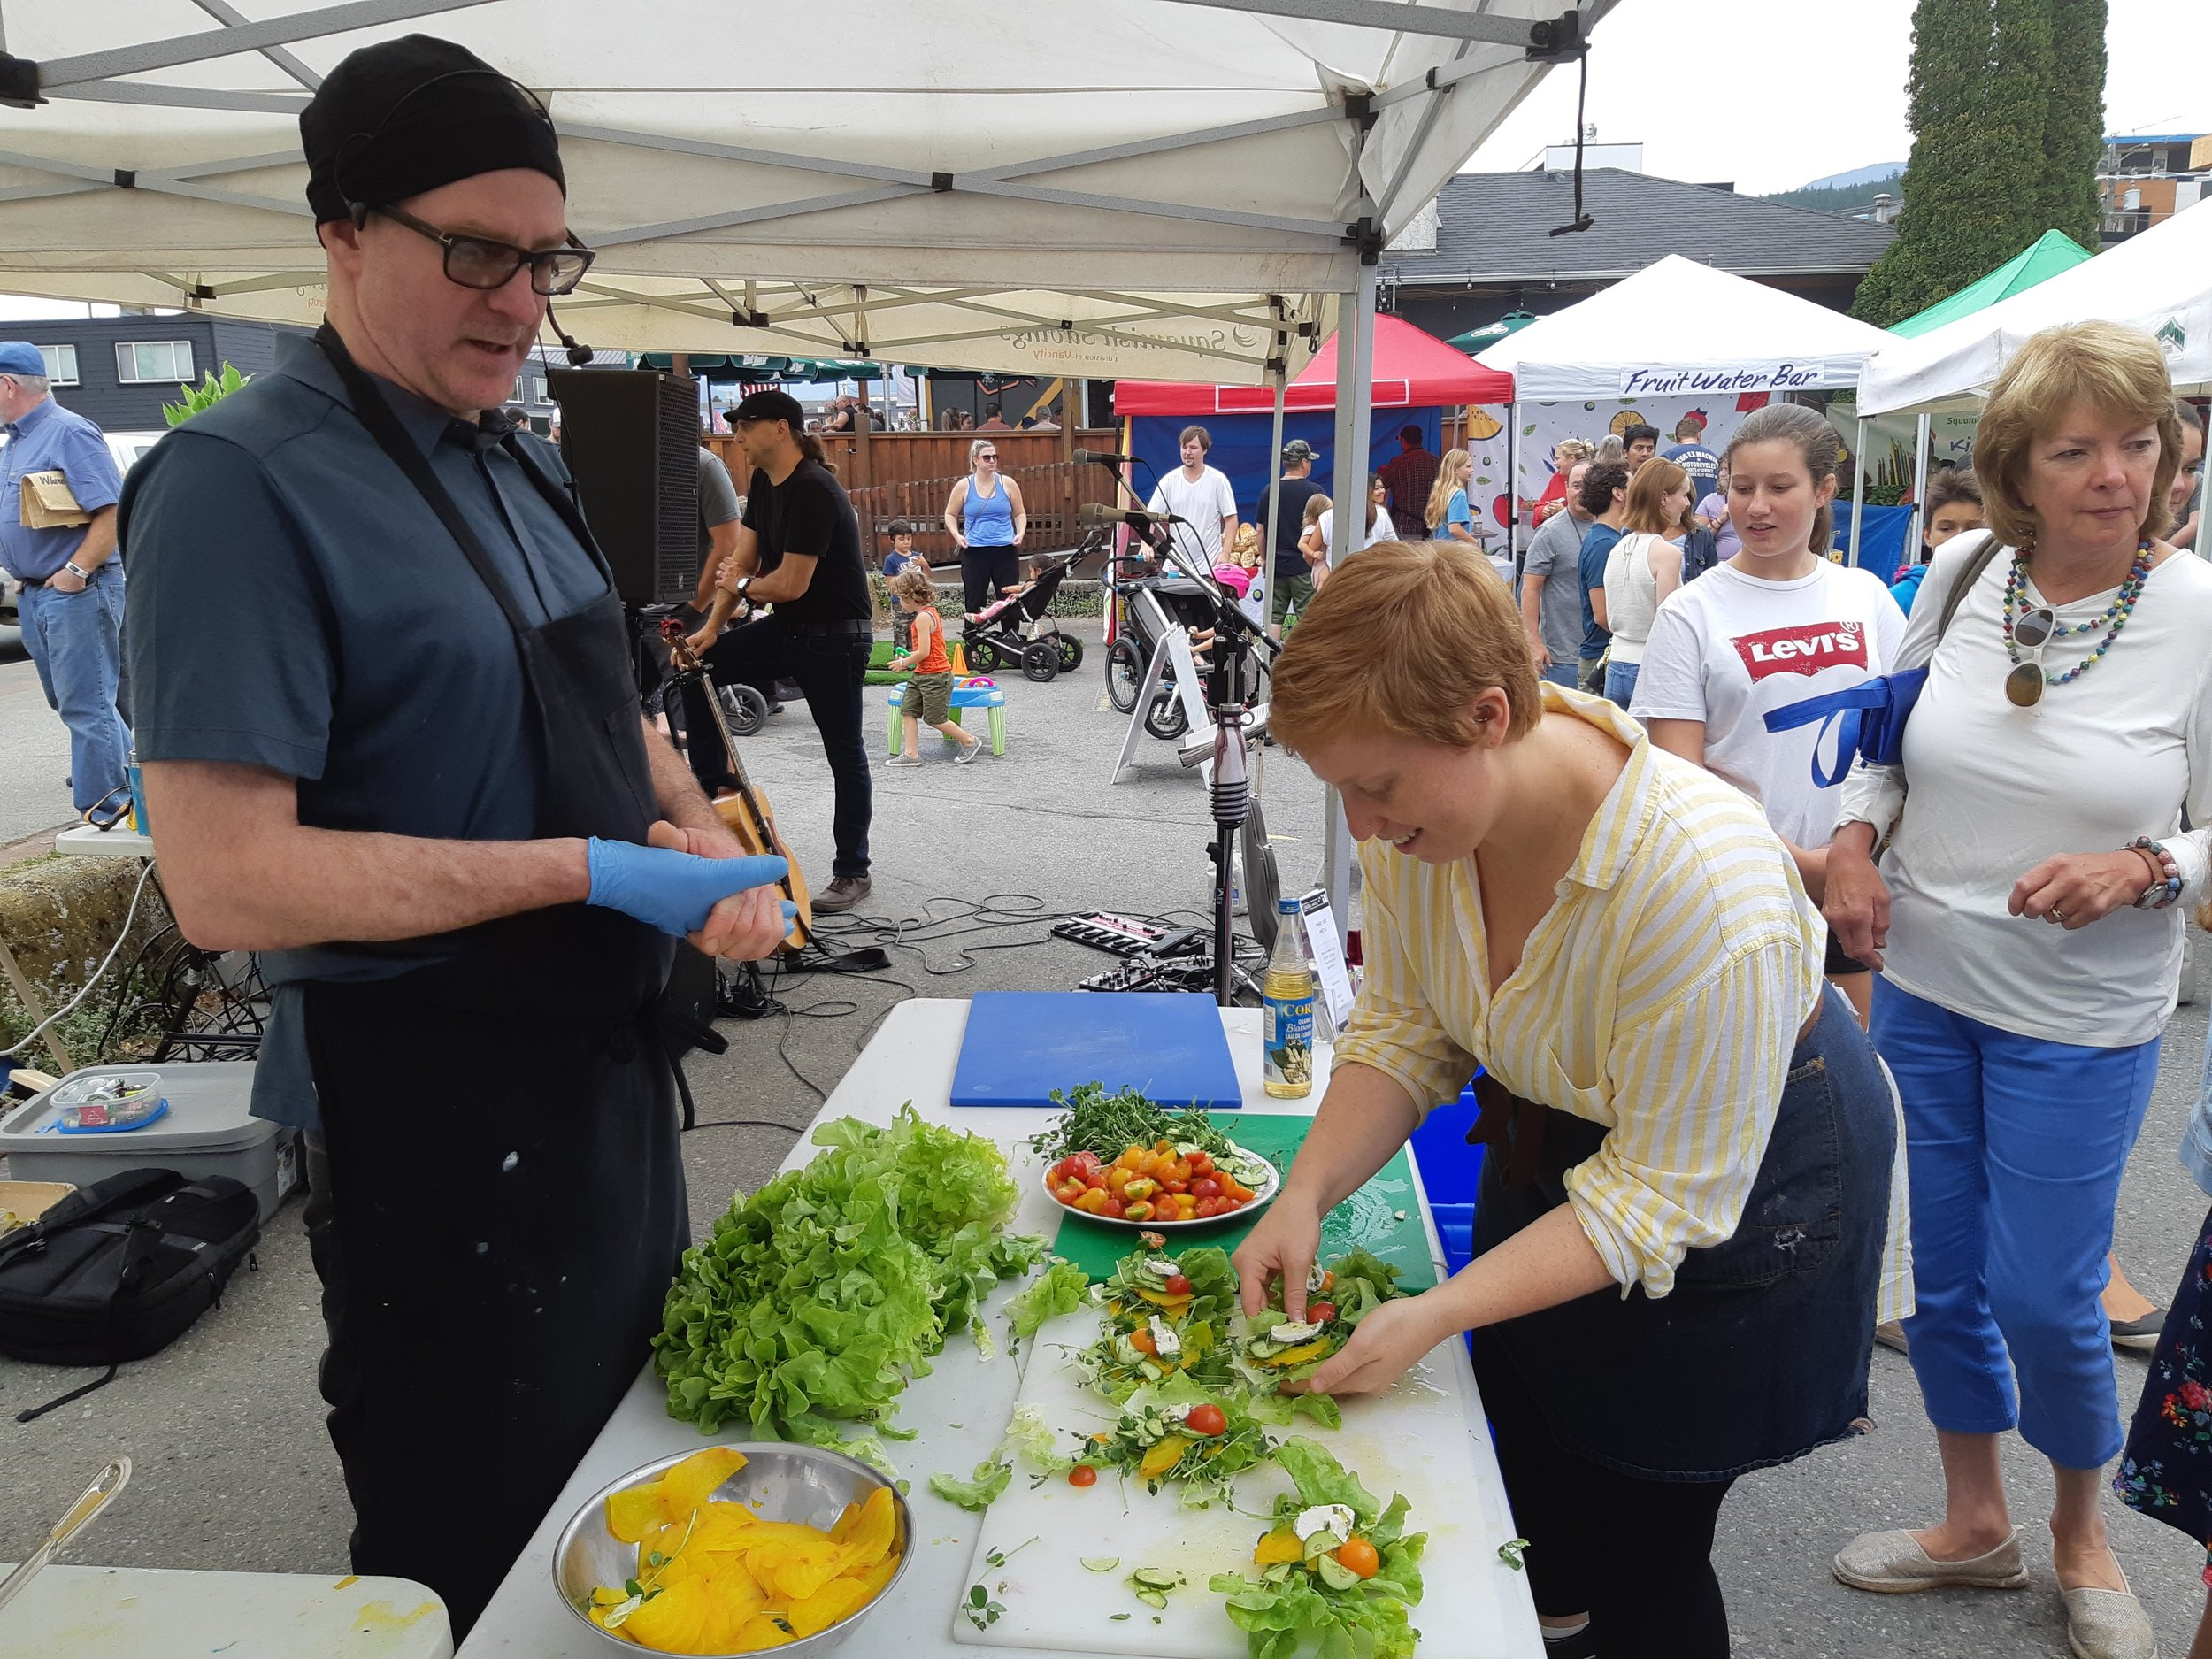 Jeramy Duckworth, head Chef and co-owner of Saha Eatery joined the market on August 31st, 2019 to demonstrate his cooking skills. Jeramy hails from Ontario originally whose passion for flavourful food led him to teach himself how to cook. He honed his skills as a line cook, working his way up the kitchen ladder, so-to-speak and made his way across the country to Victoria, then Vancouver and eventually to Squamish with a friend who asked him to open Saha with him.  At the market Jeramy created a beautiful golden beet salad with garlic scape cummulus vegan cheese. You can find the recipe on our recipe share  here .